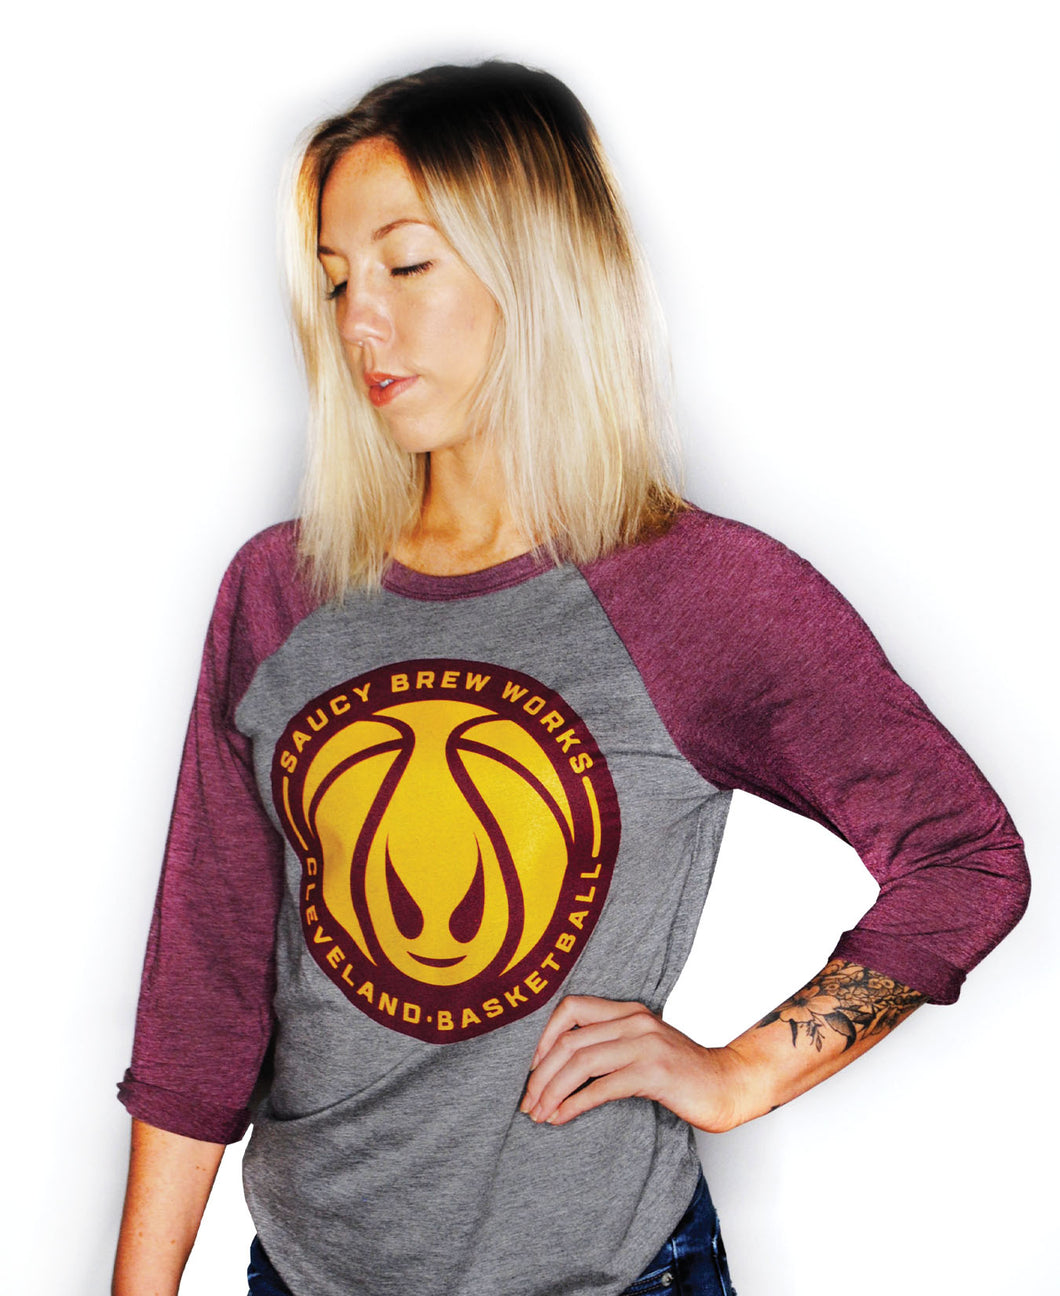 Unisex Grey/Maroon Raglan B-Ball Shirt